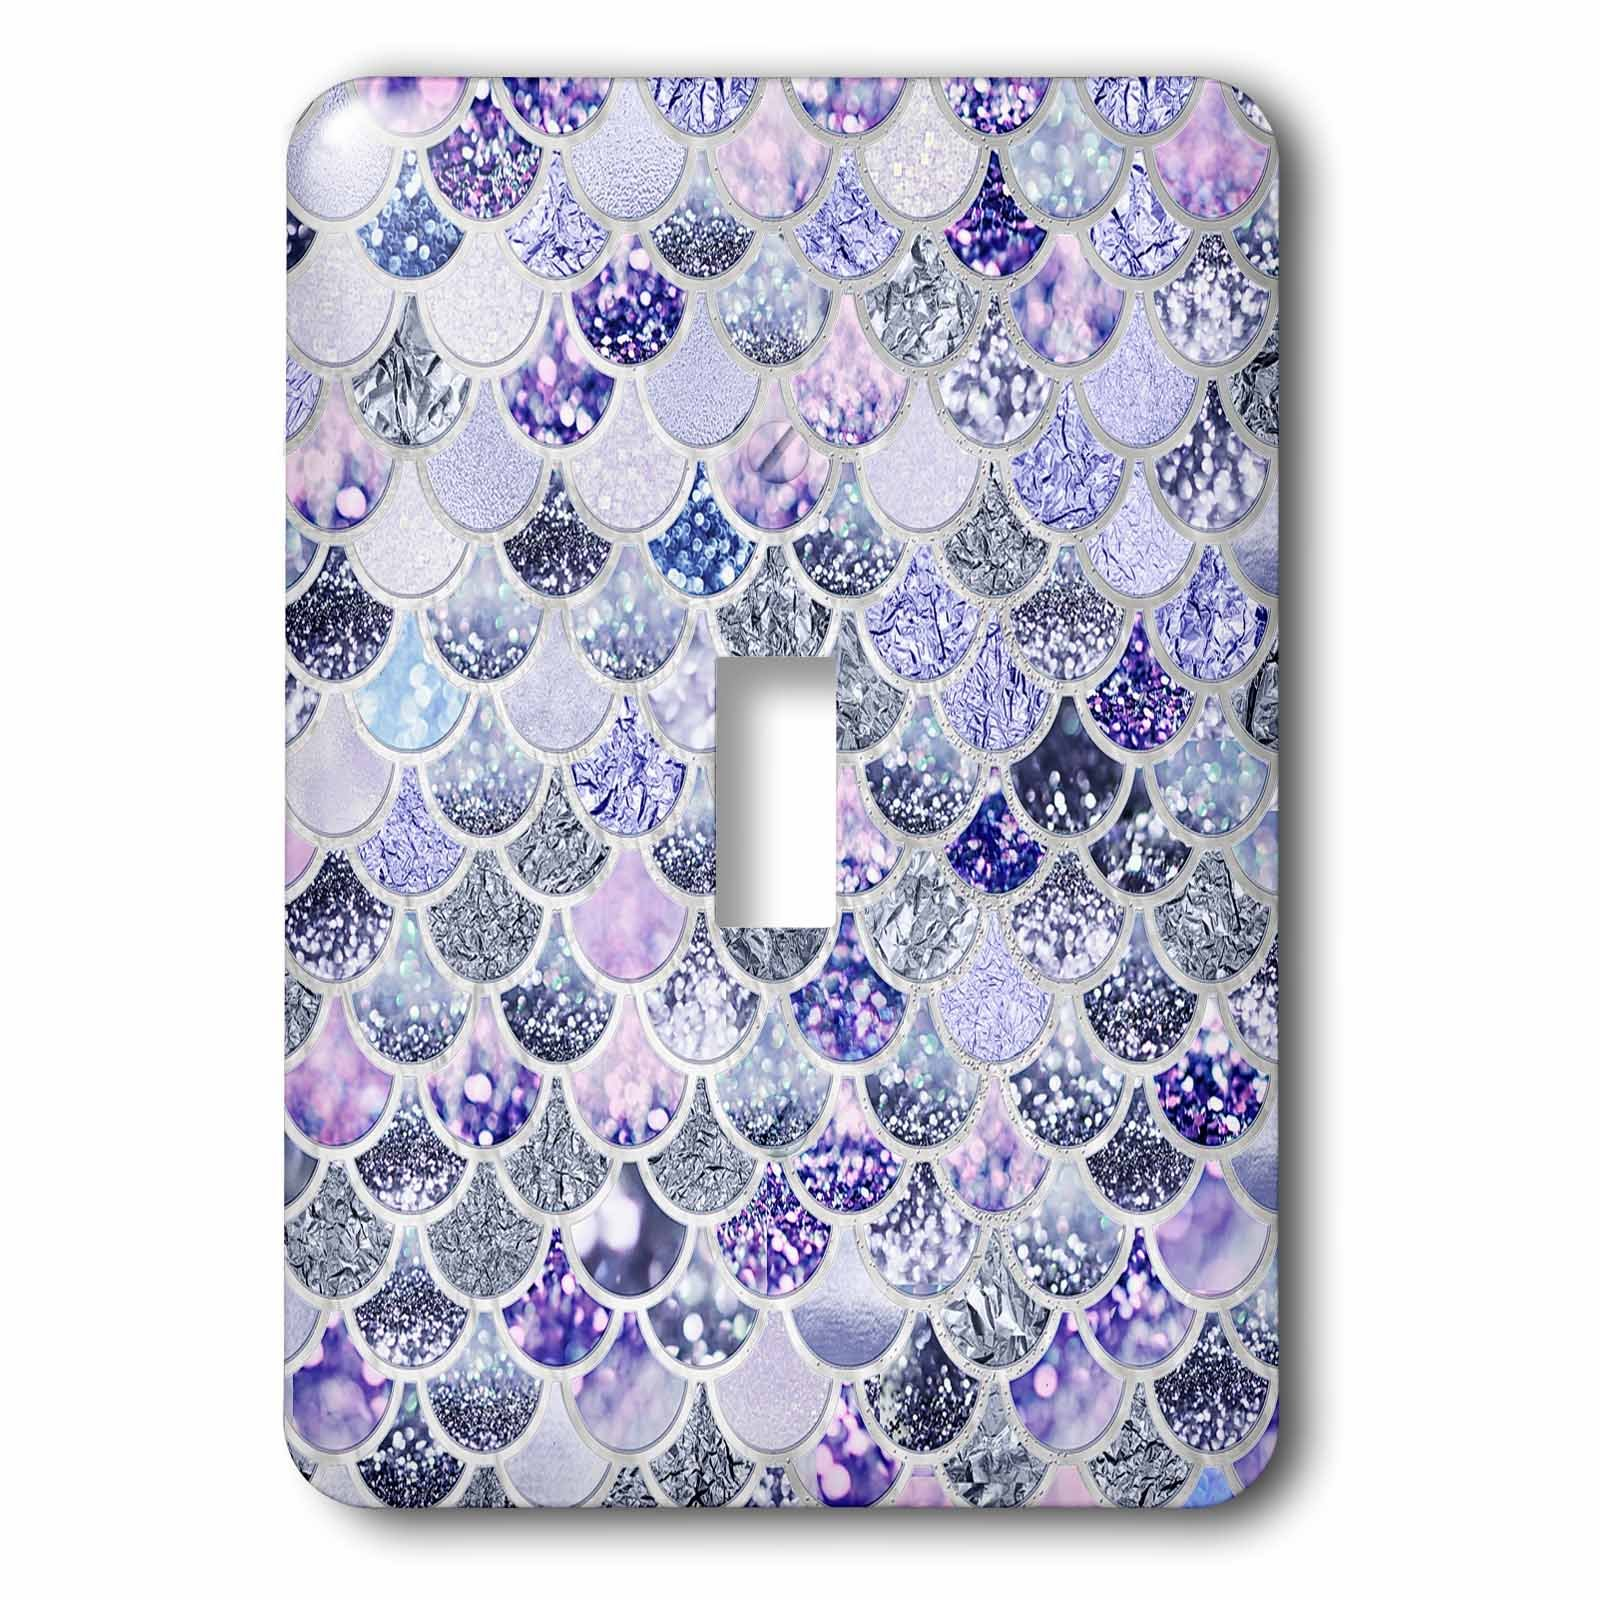 3dRose lsp_275450_1 Image of Purple Silver Shiny Luxury Elegant Mermaid Scales Glitter Toggle Switch, Mixed